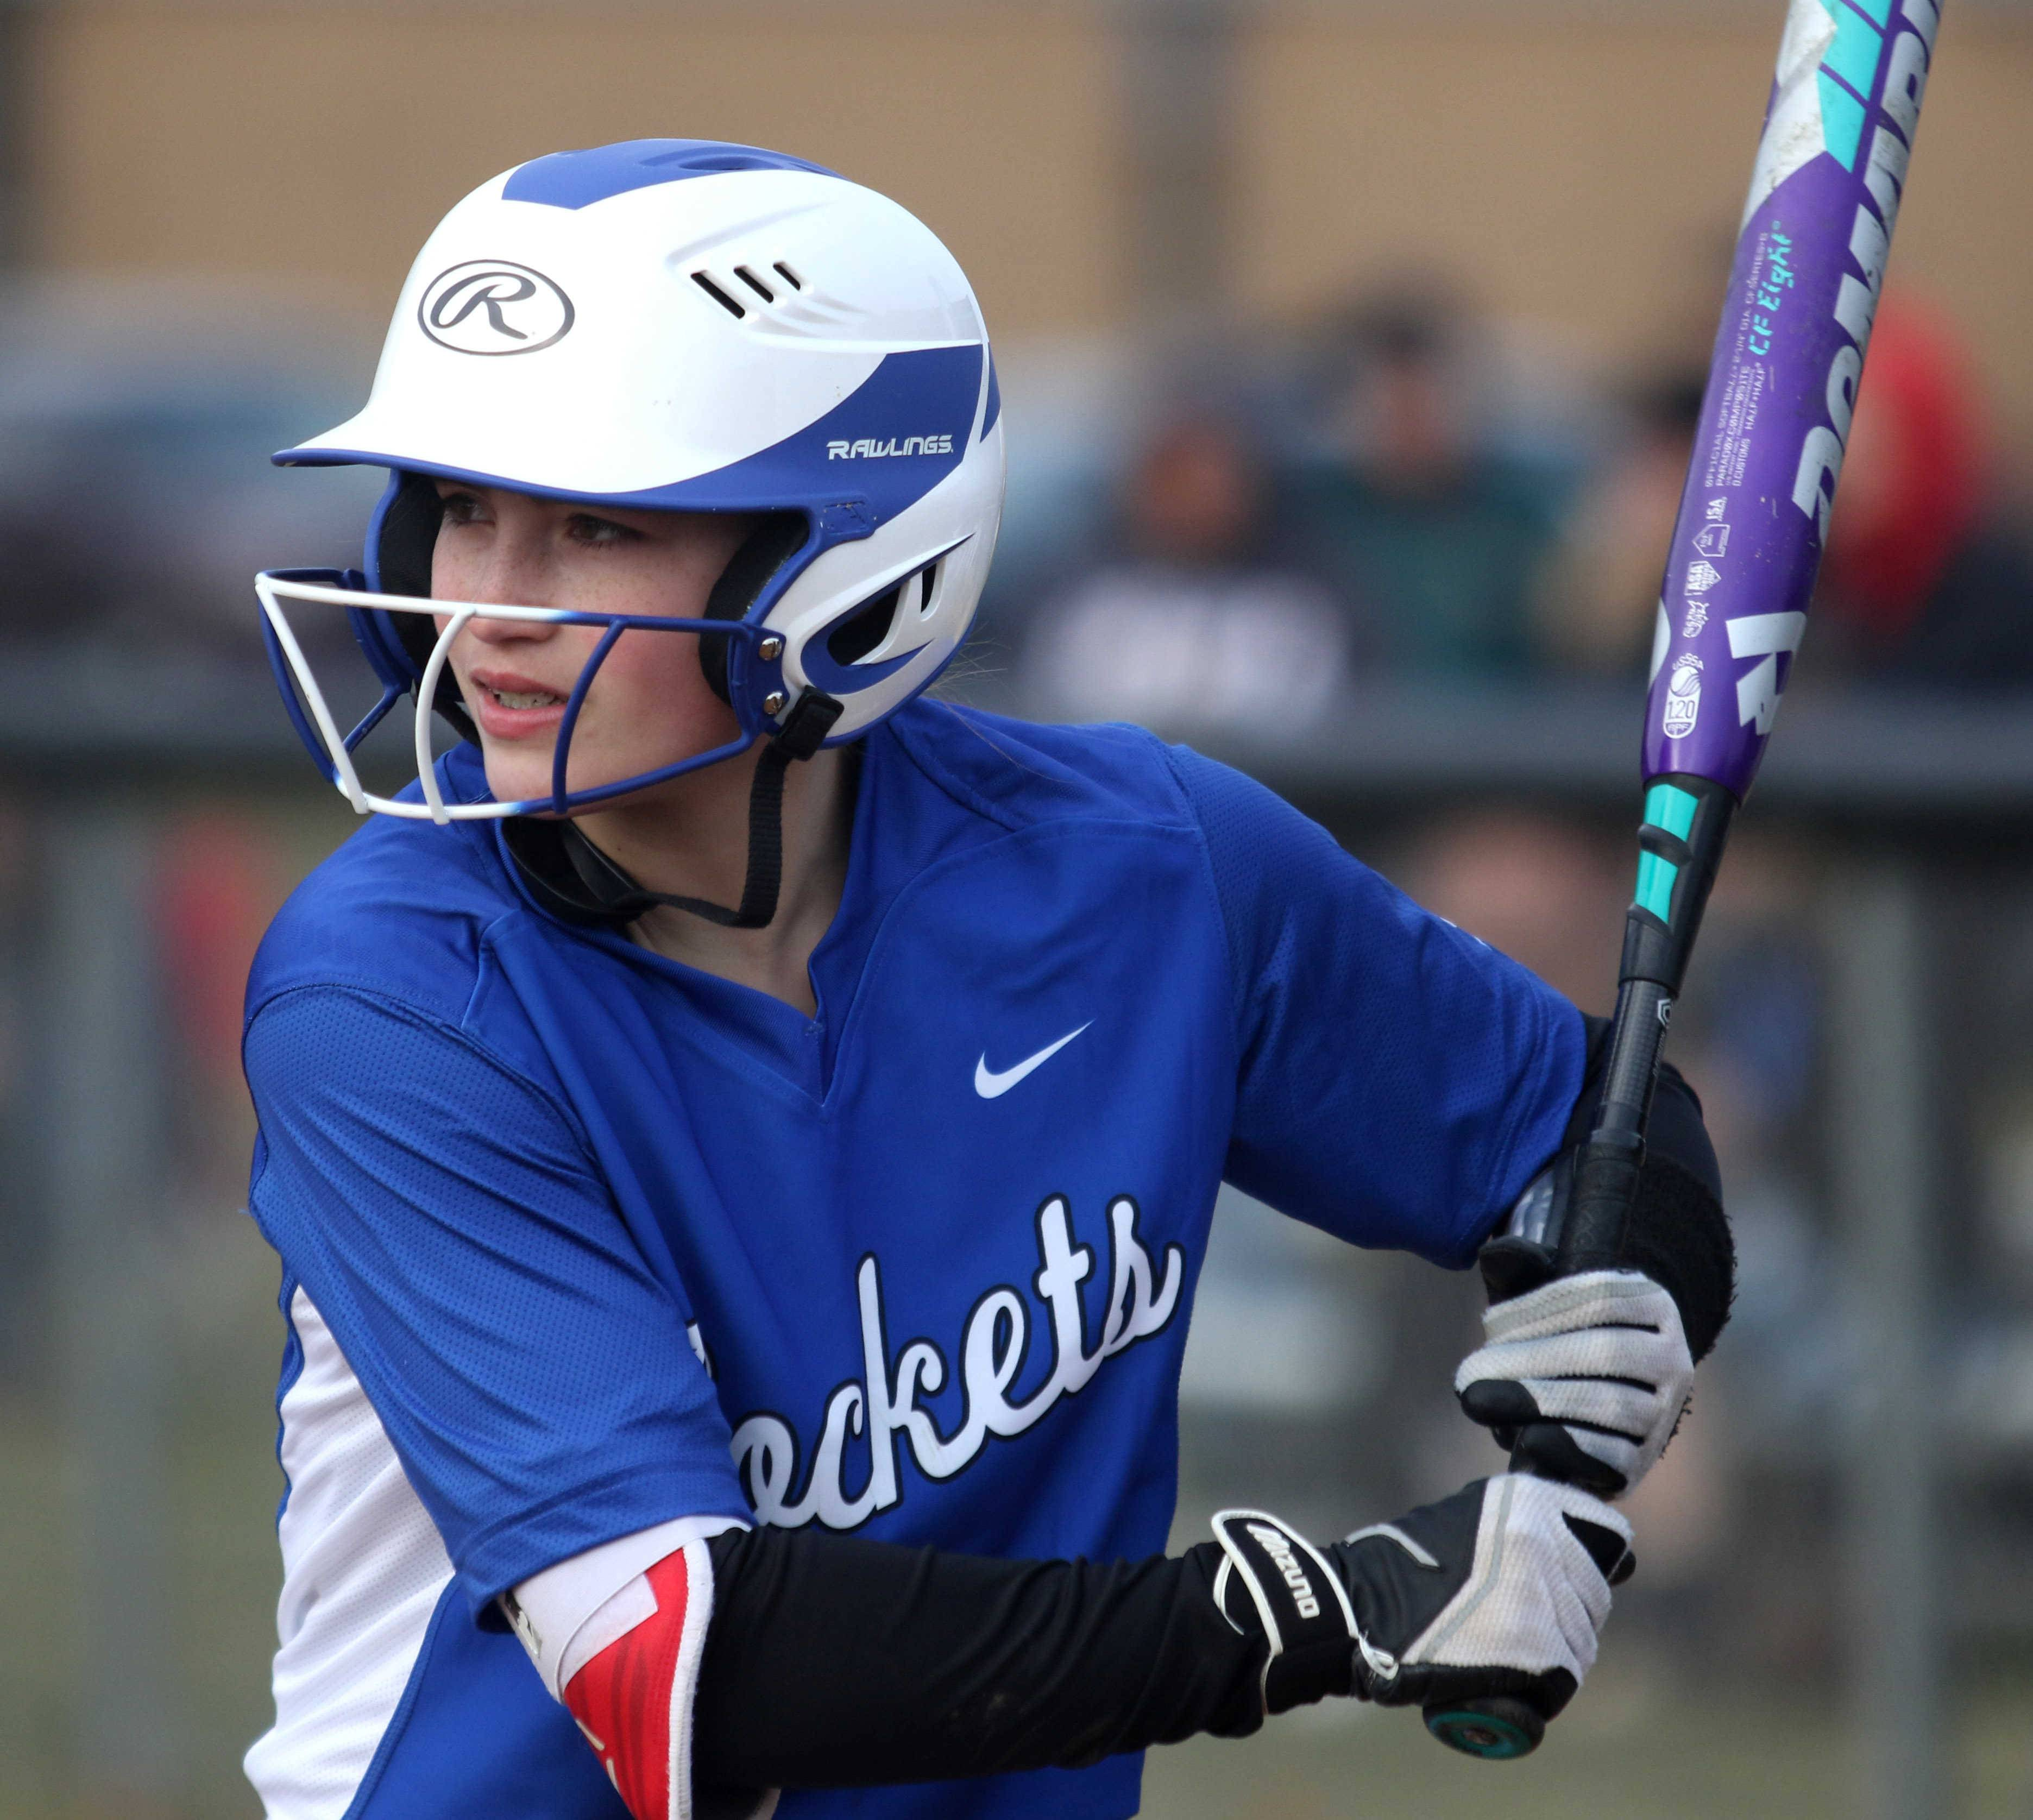 Burlington Central's Reili Gardner checks in to bat during varsity softball action at Kaneland Monday night.